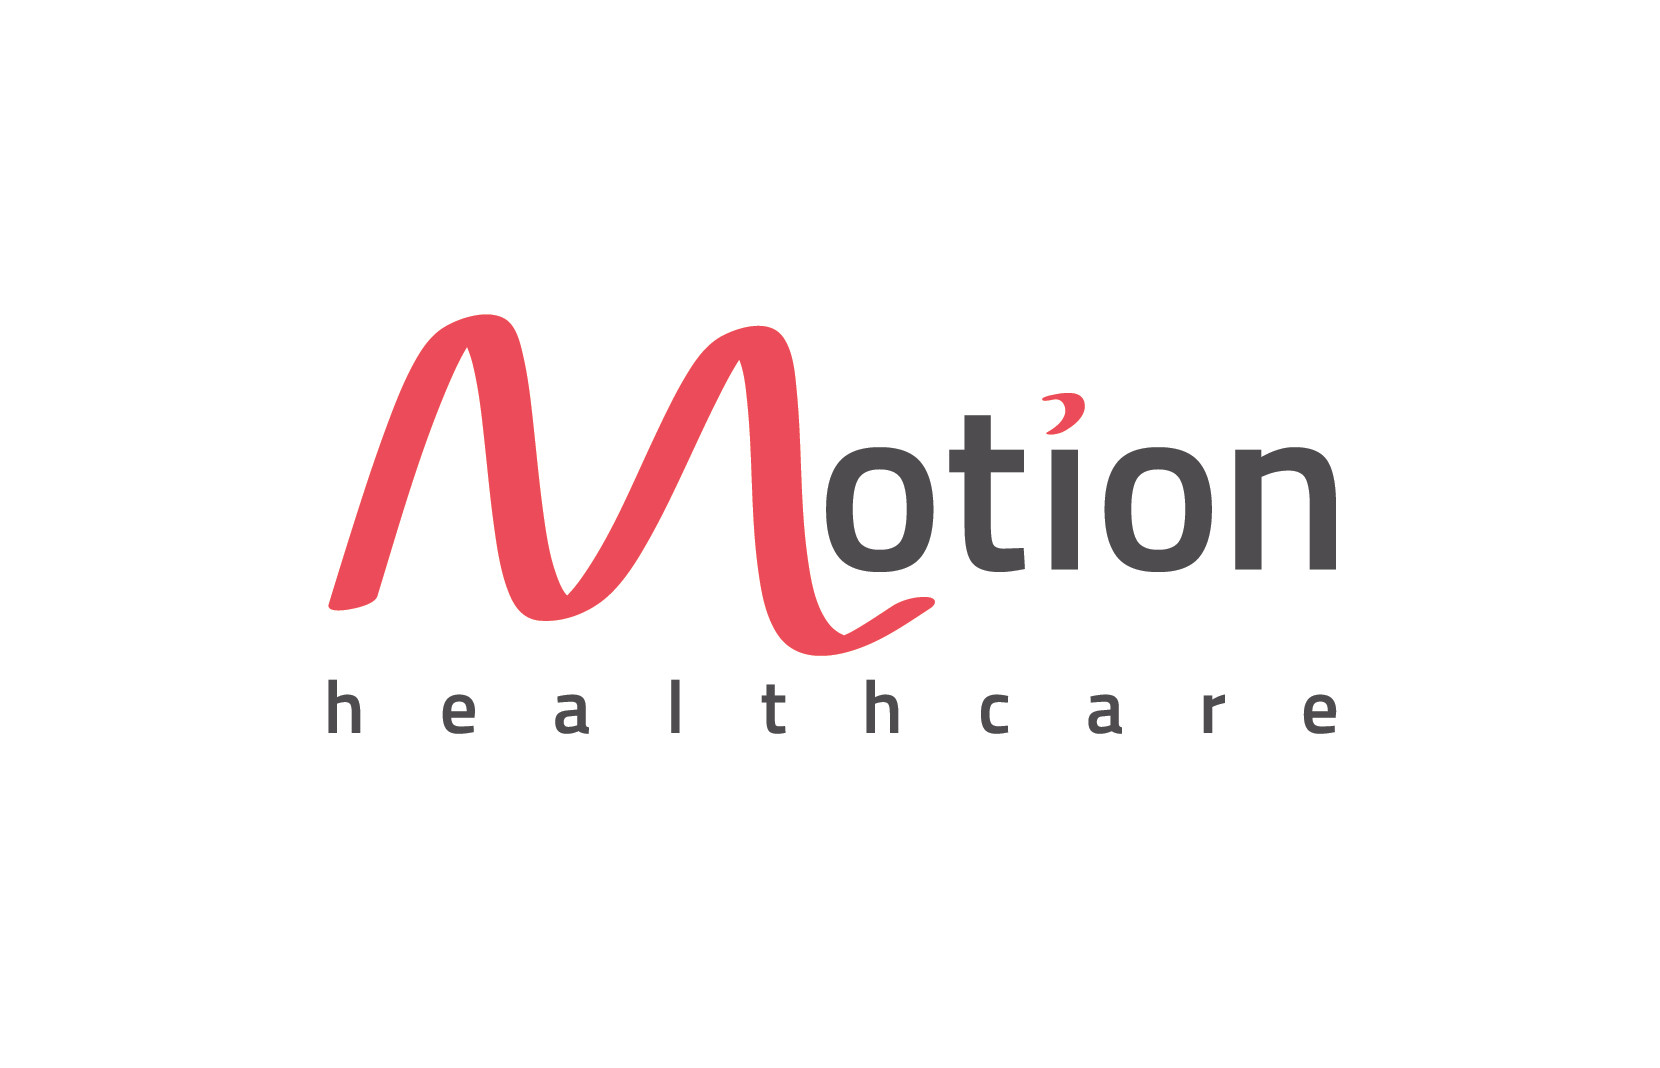 MHC__Motion Healthcare.jpg